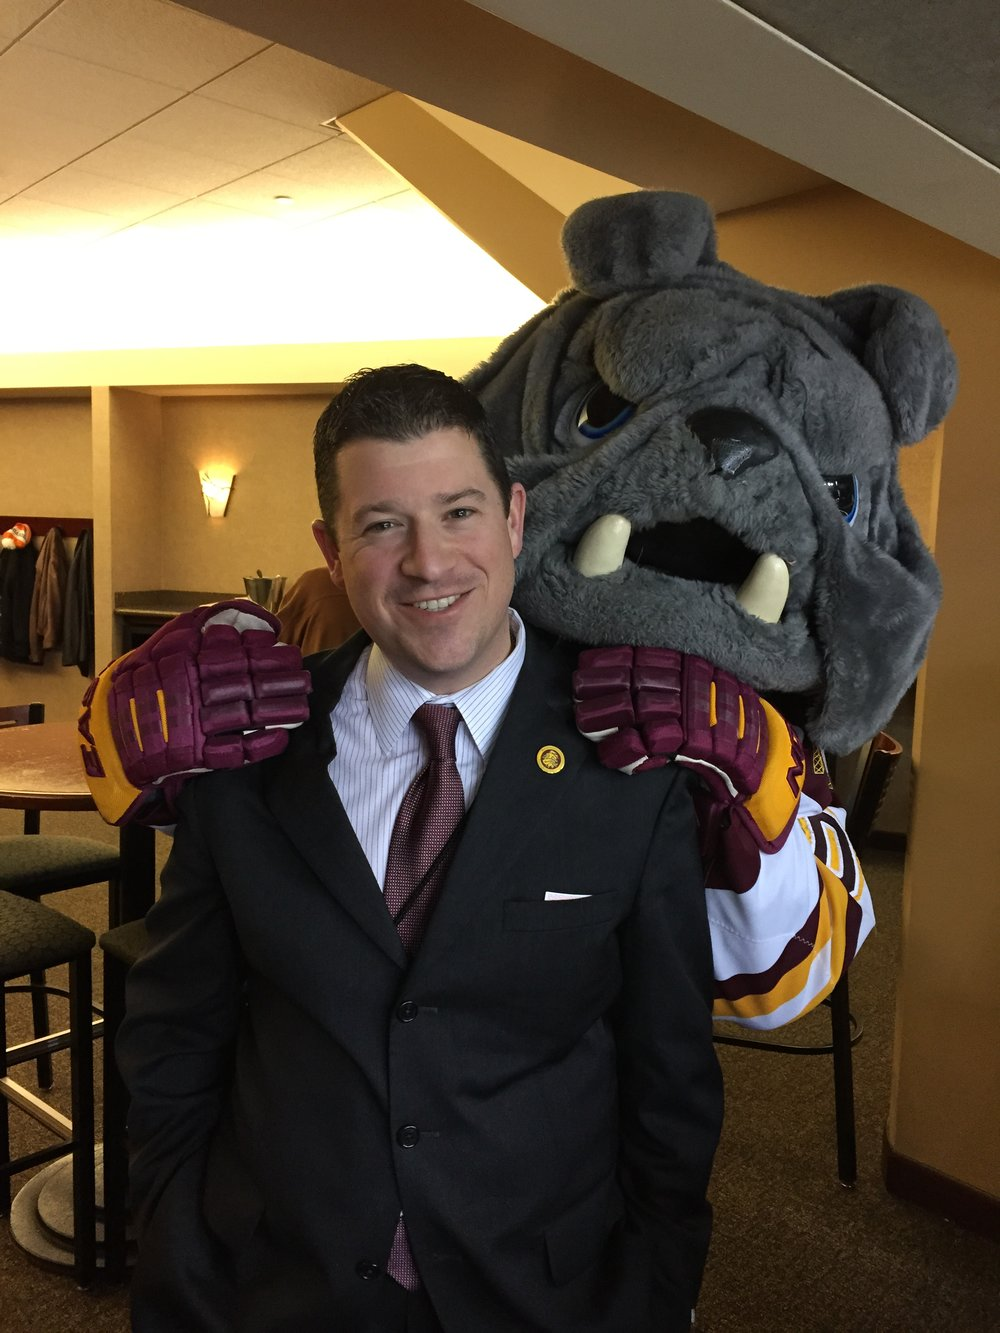 Josh Berlo is entering his fifth season as athletic director at UMD in 2017-18. Photo by Mary Ellen Polak